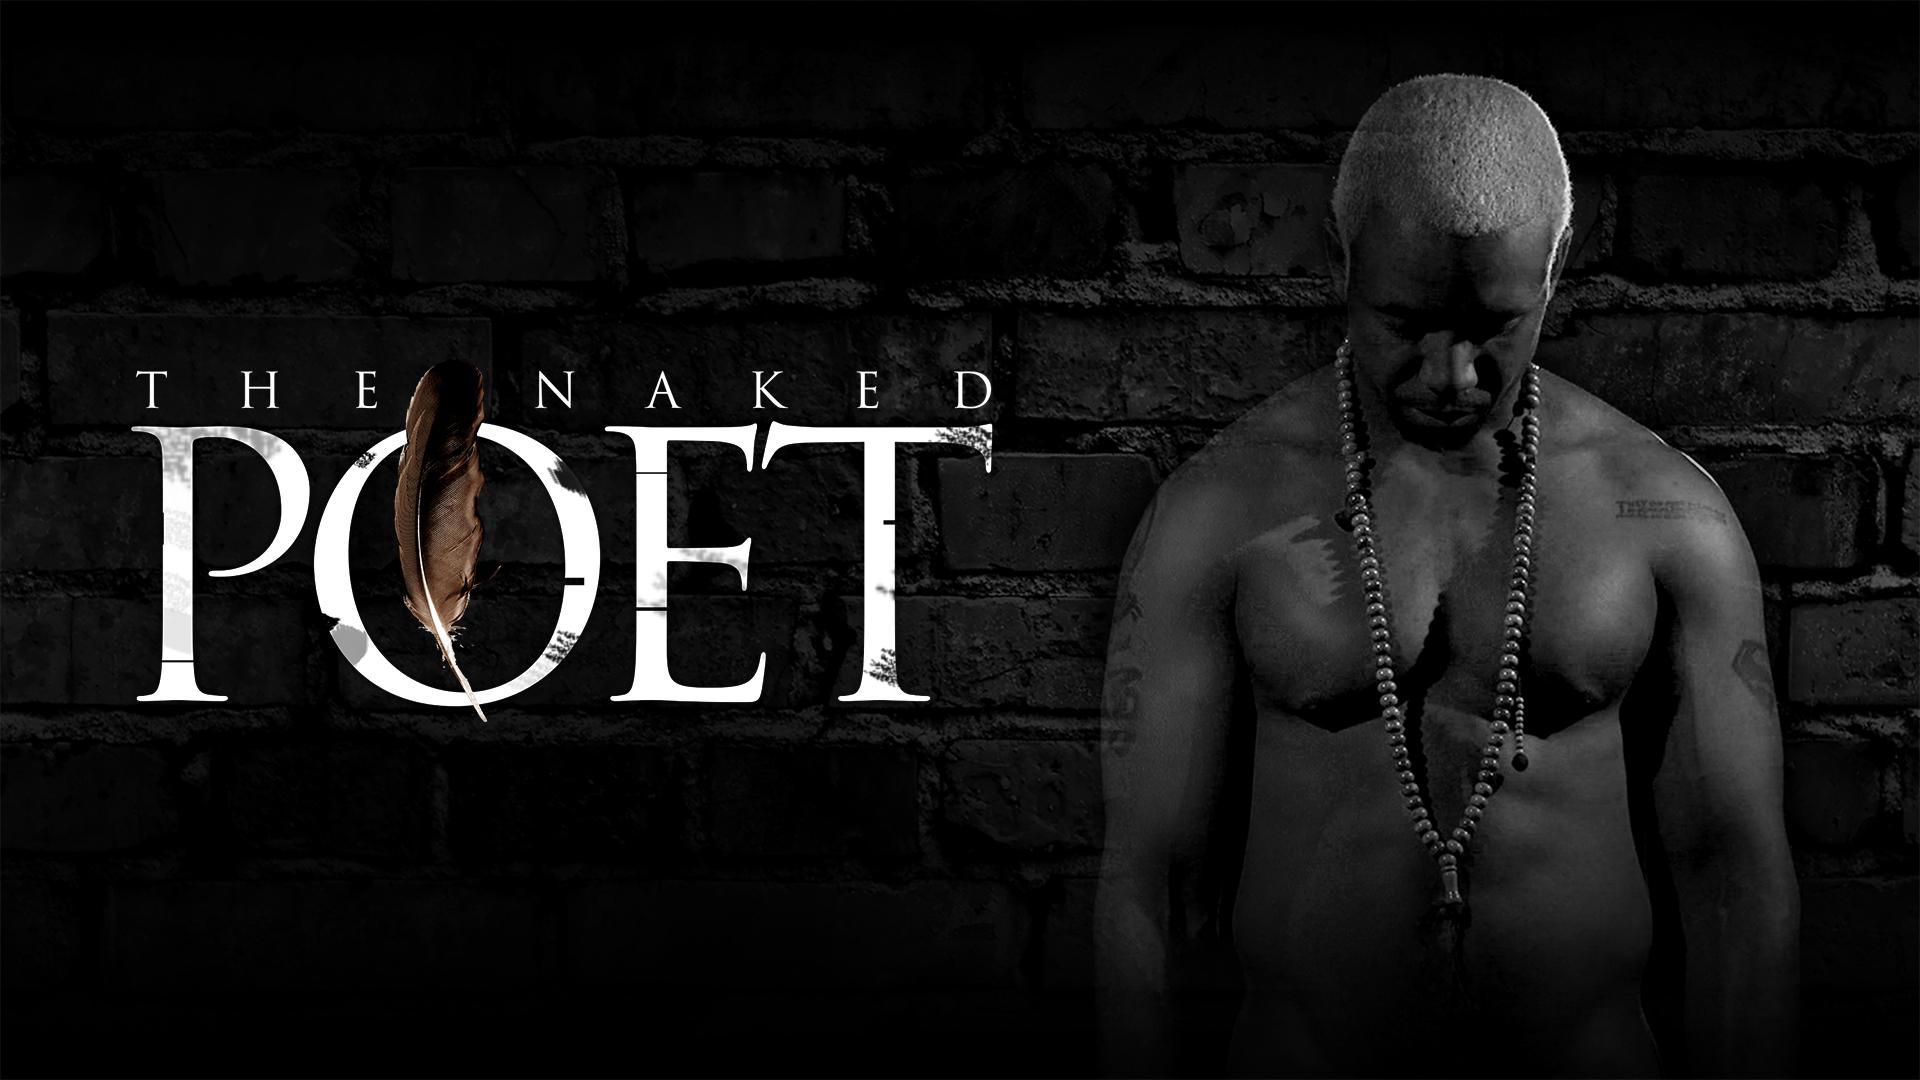 The Naked Poet - Drama category image